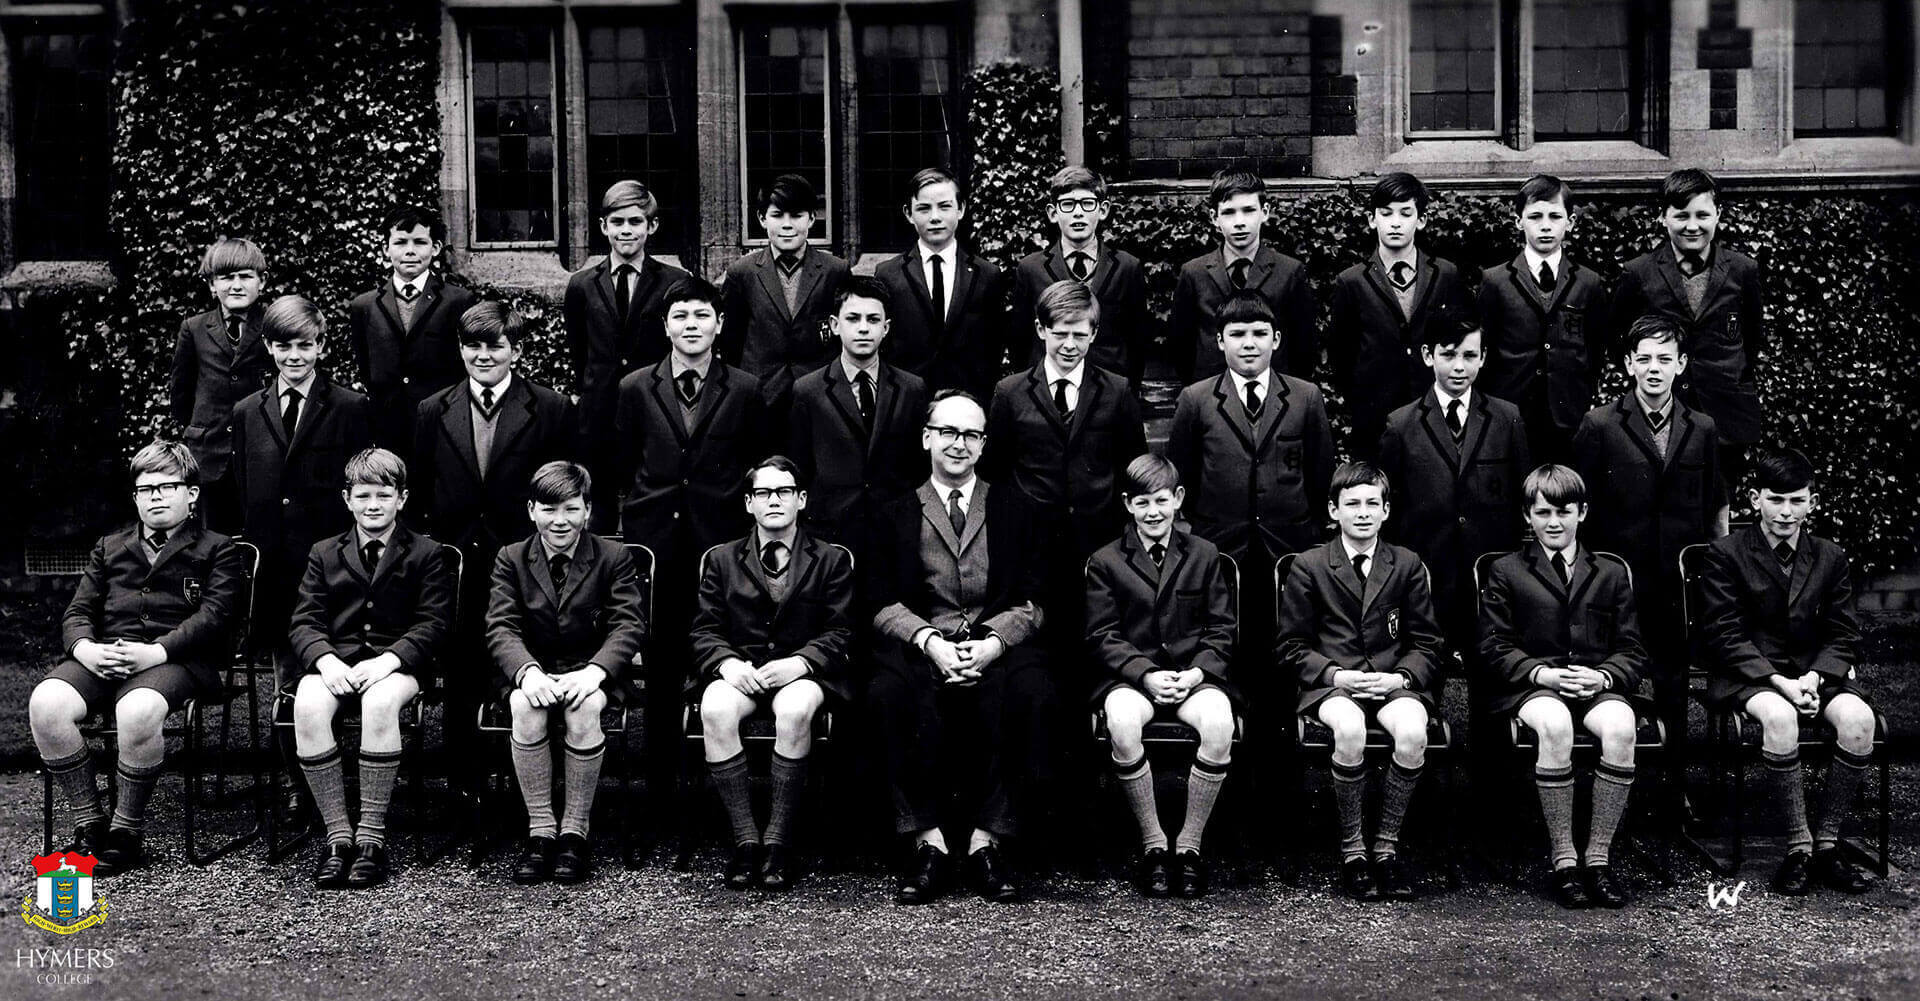 Hymers College opened in 1893 as a school for boys on the site of the old Botanic Gardens of Hull. -